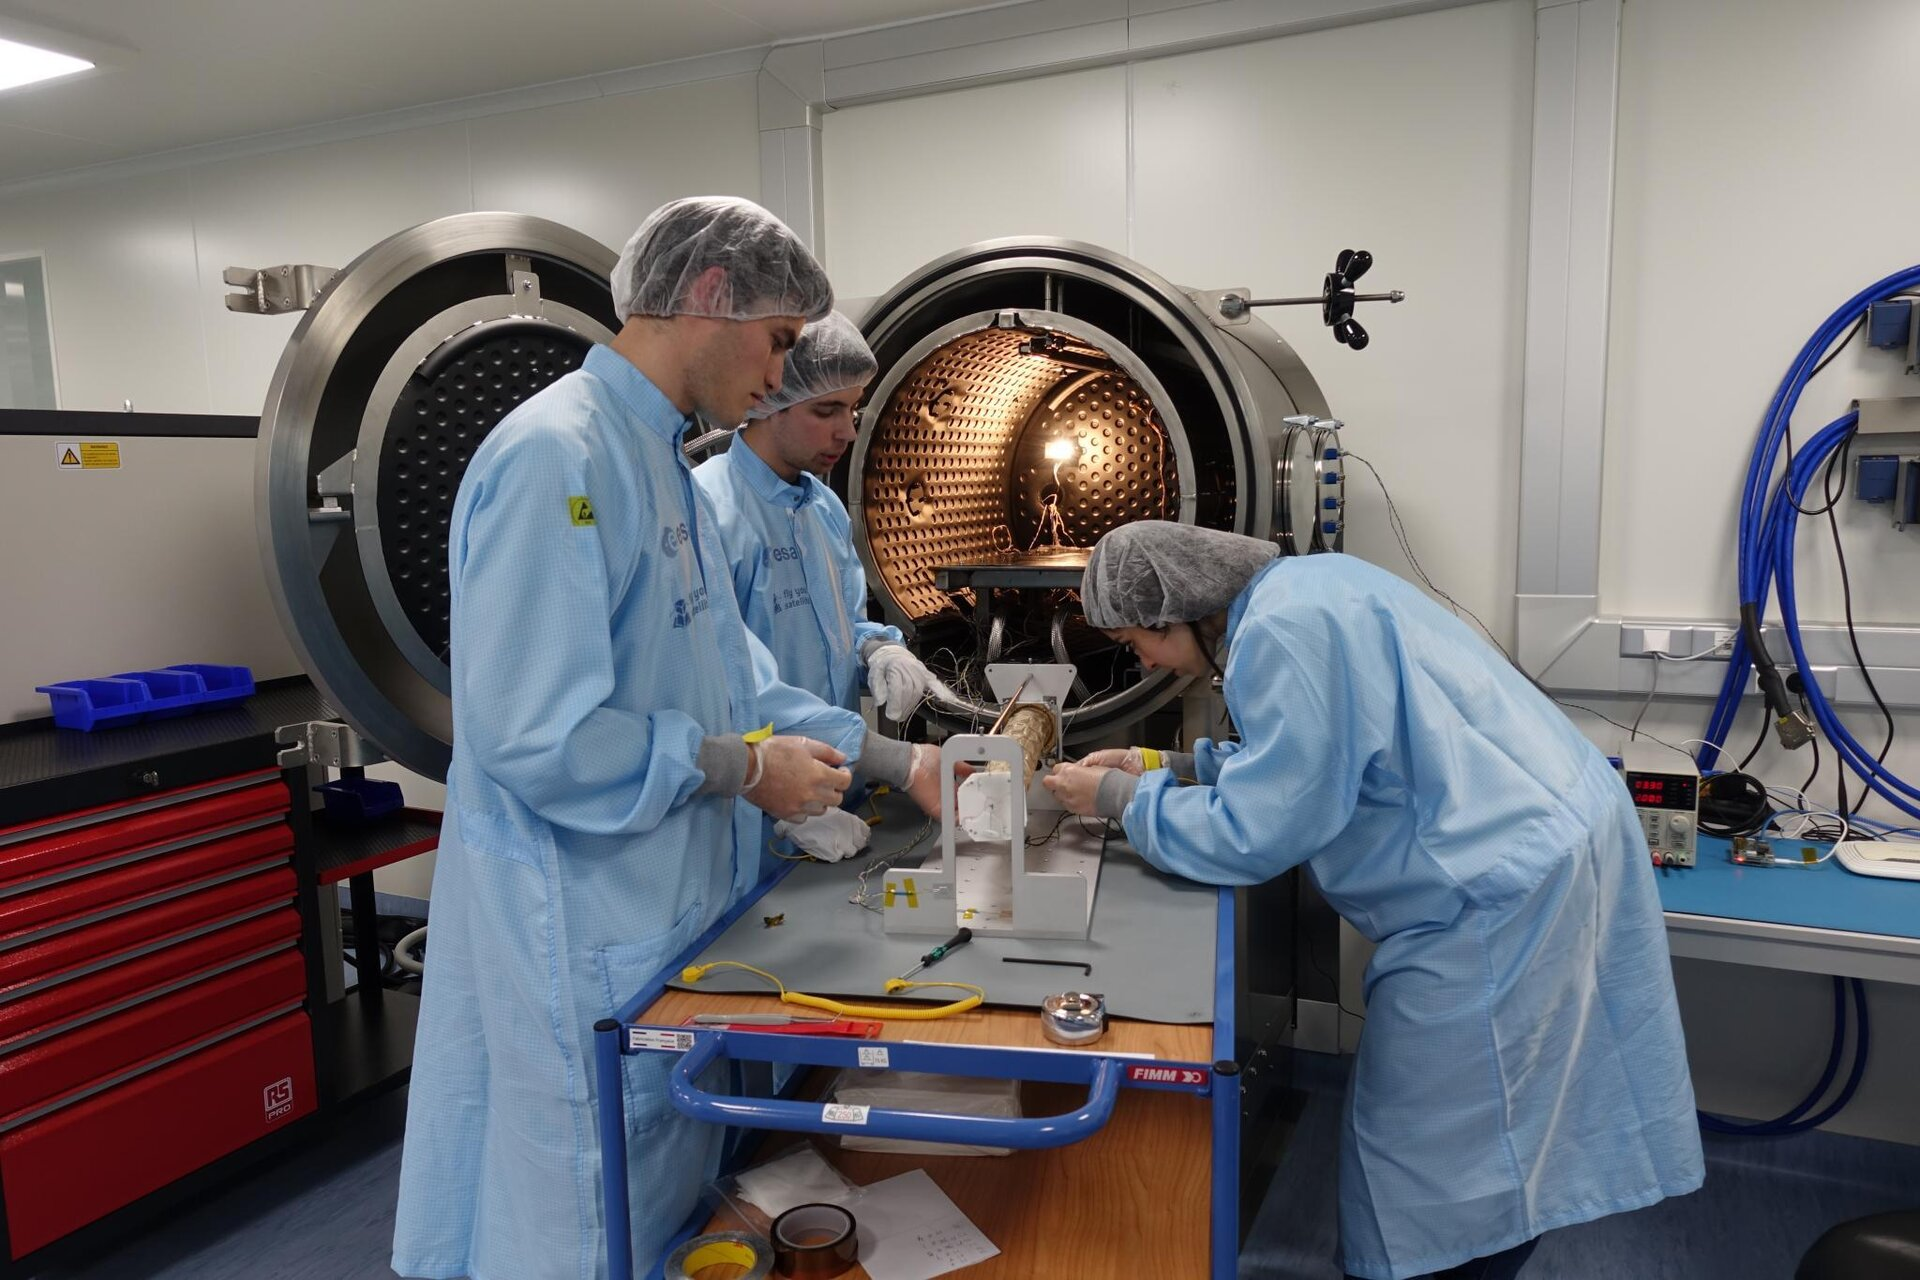 University students testing at the CubeSat Support Facility